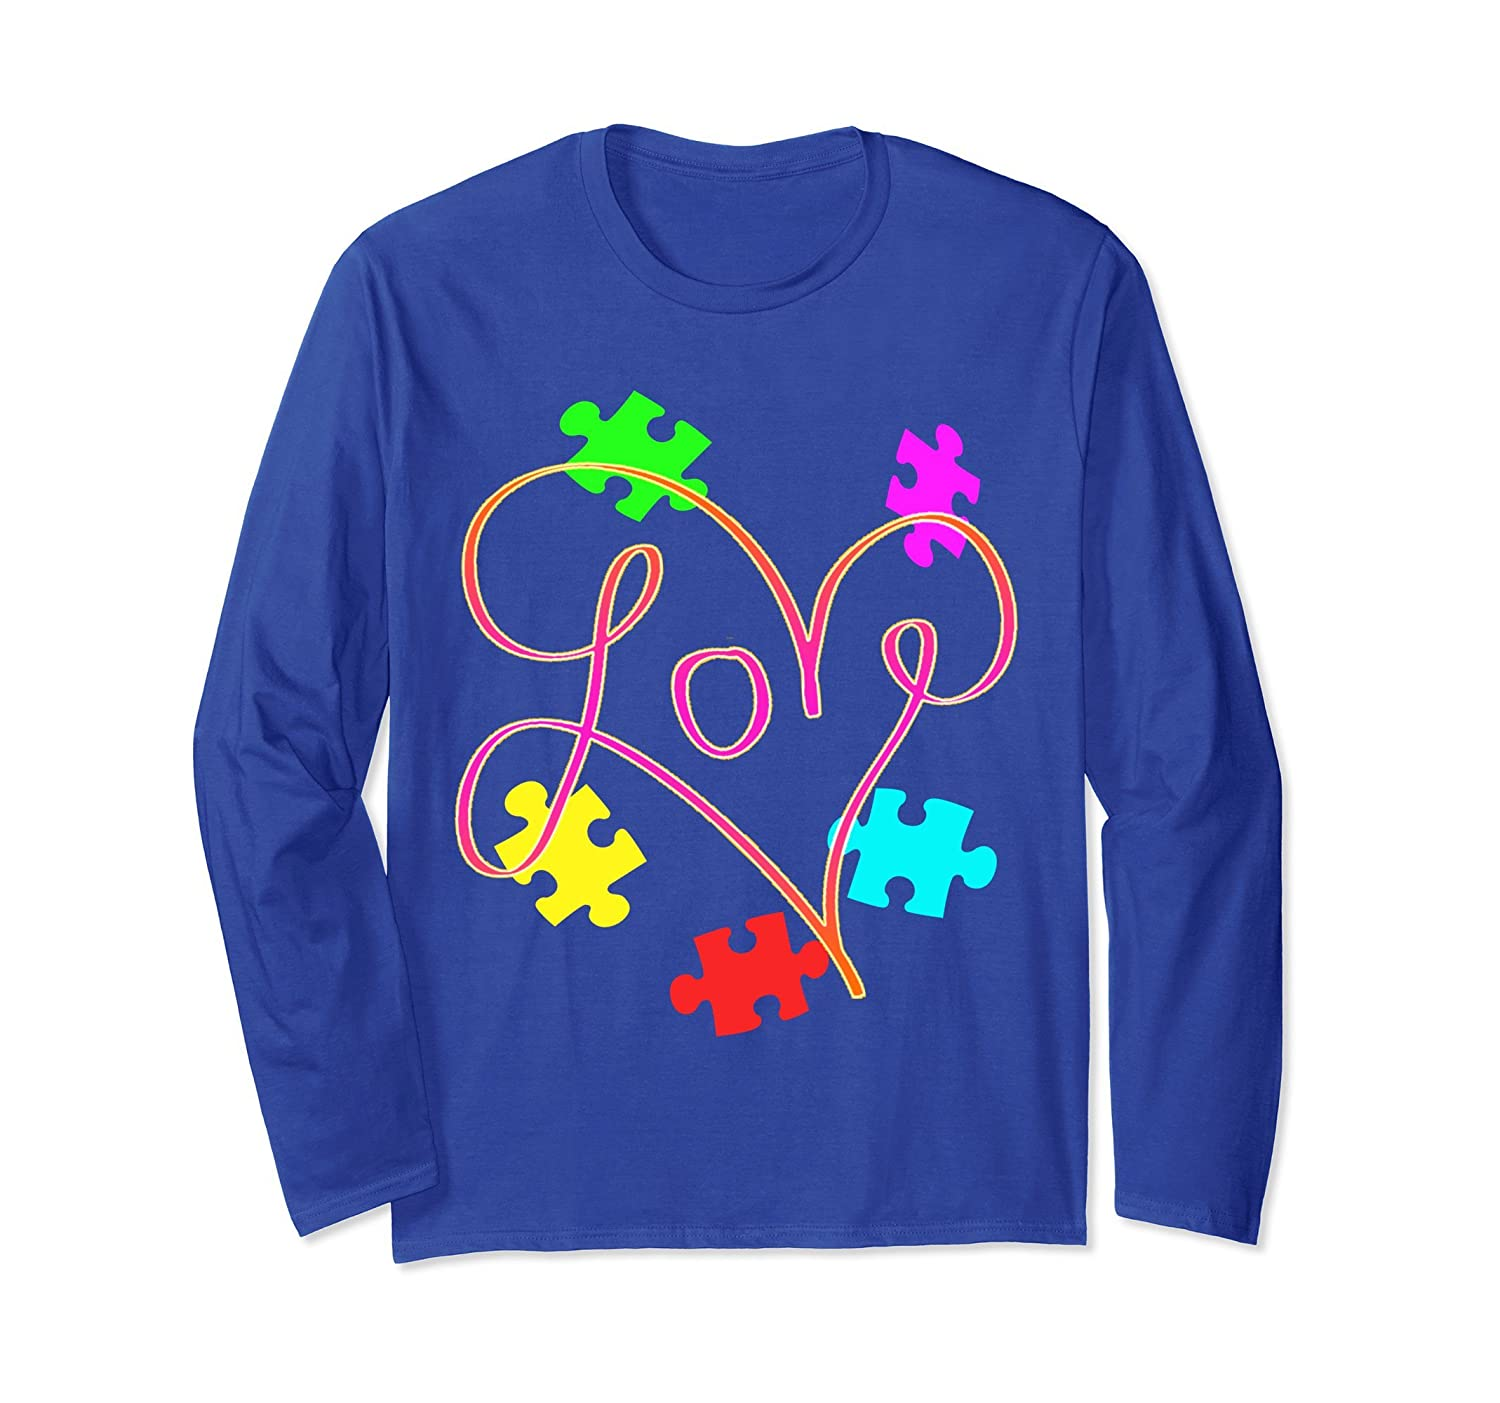 autism awareness shirts - Autism awareness love long sleeve-mt